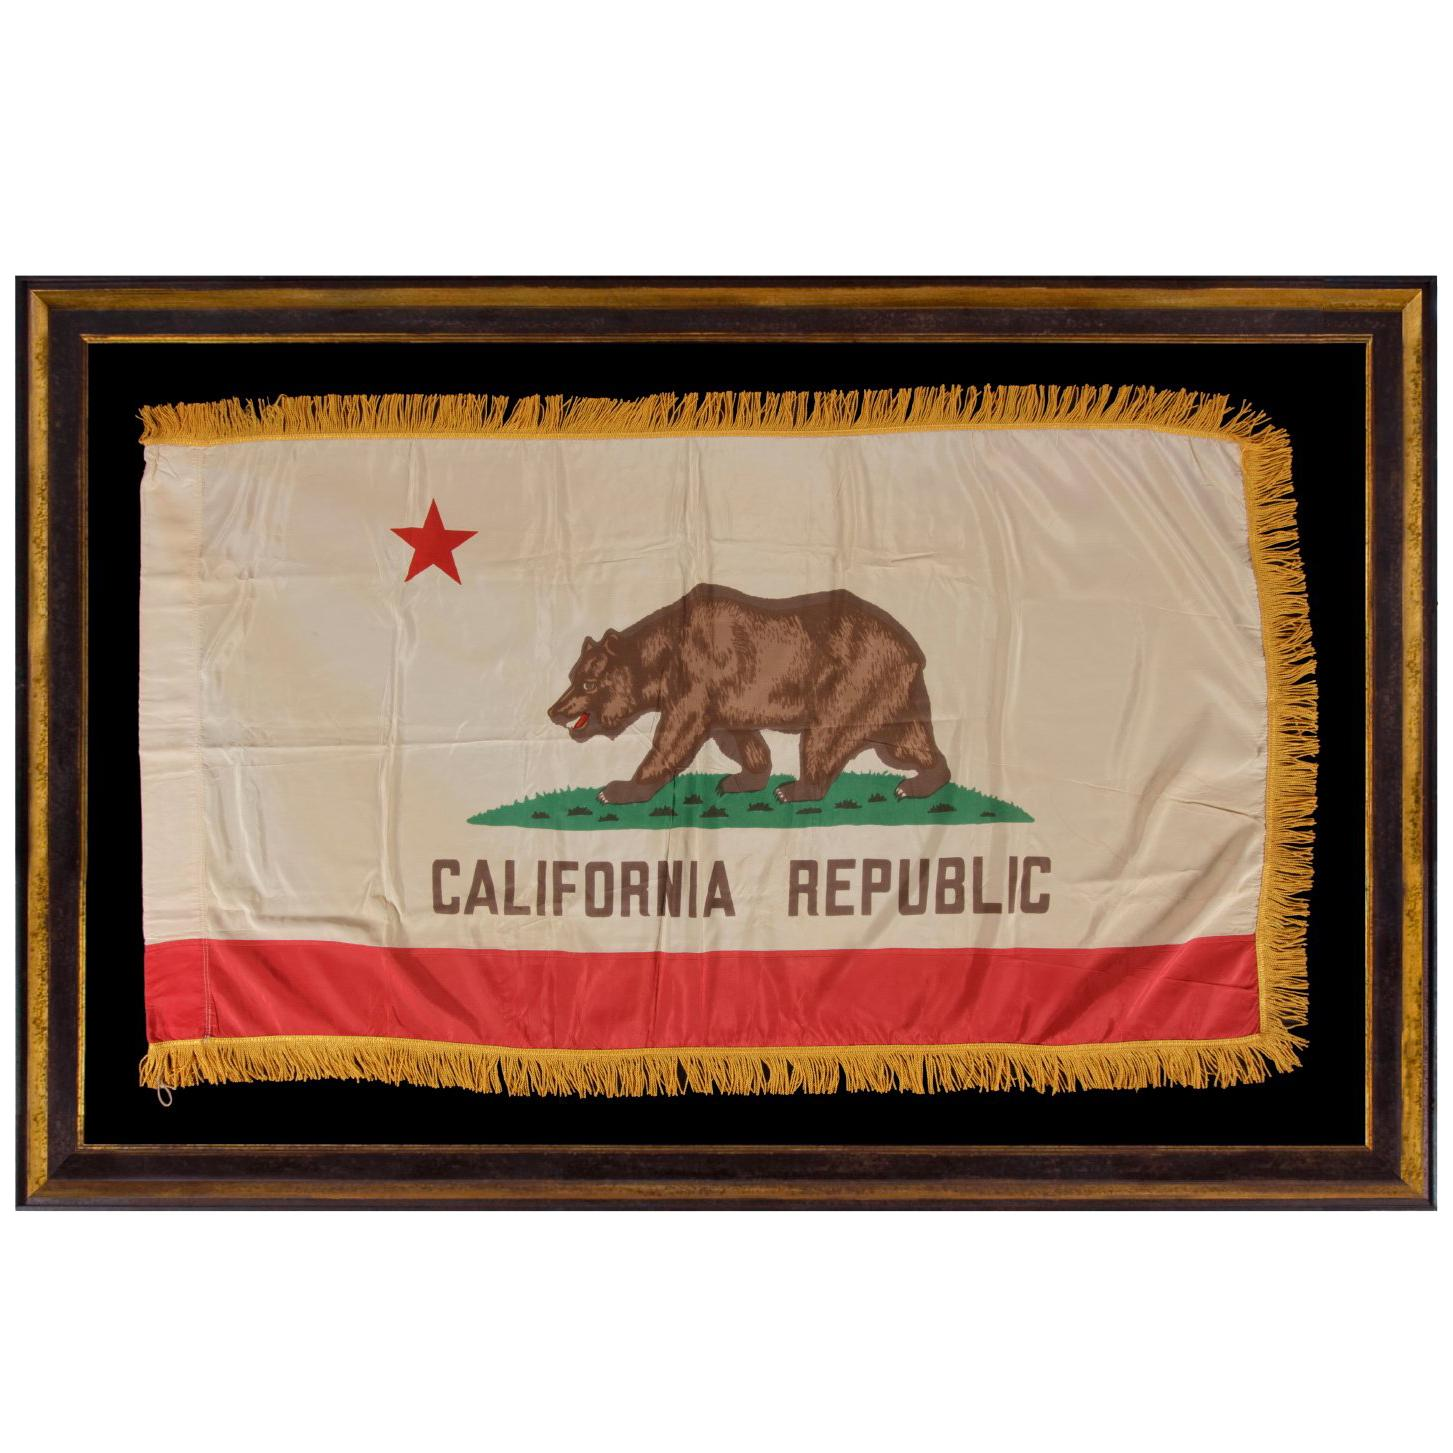 California State Flag with Gold Silk Fringe